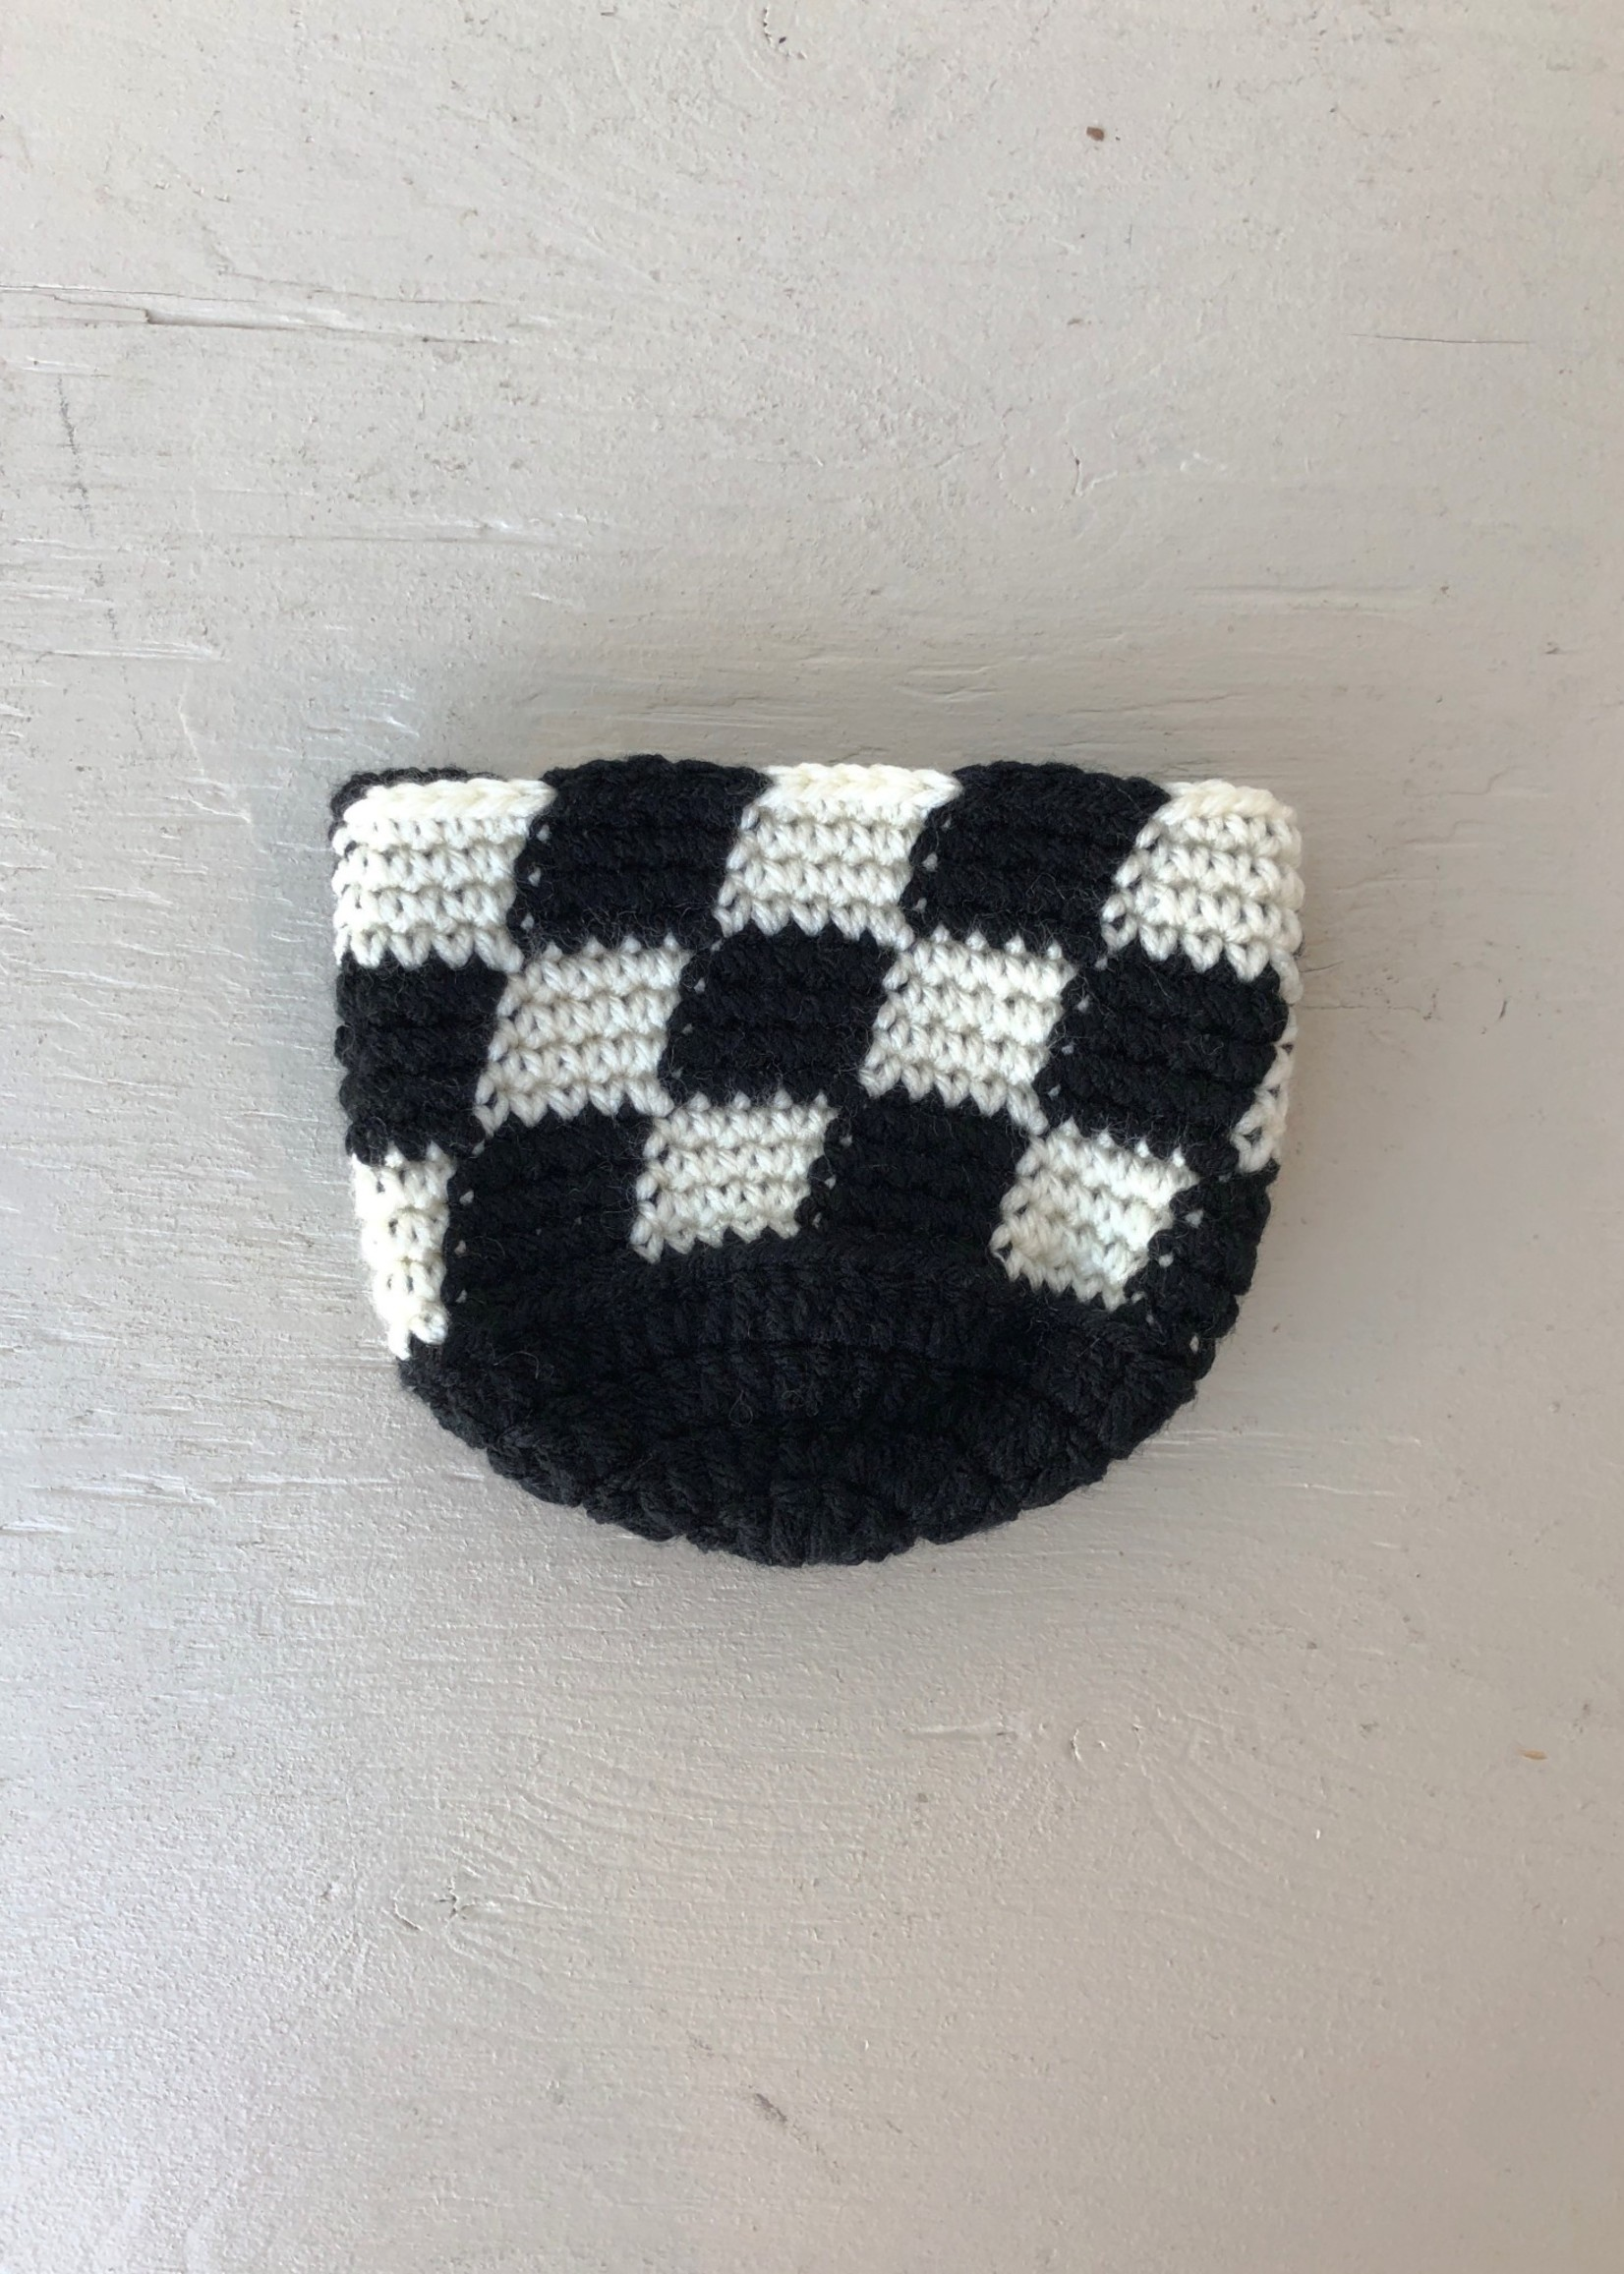 Slow May Small Checkered Crochet Plant Cozy by Slow May